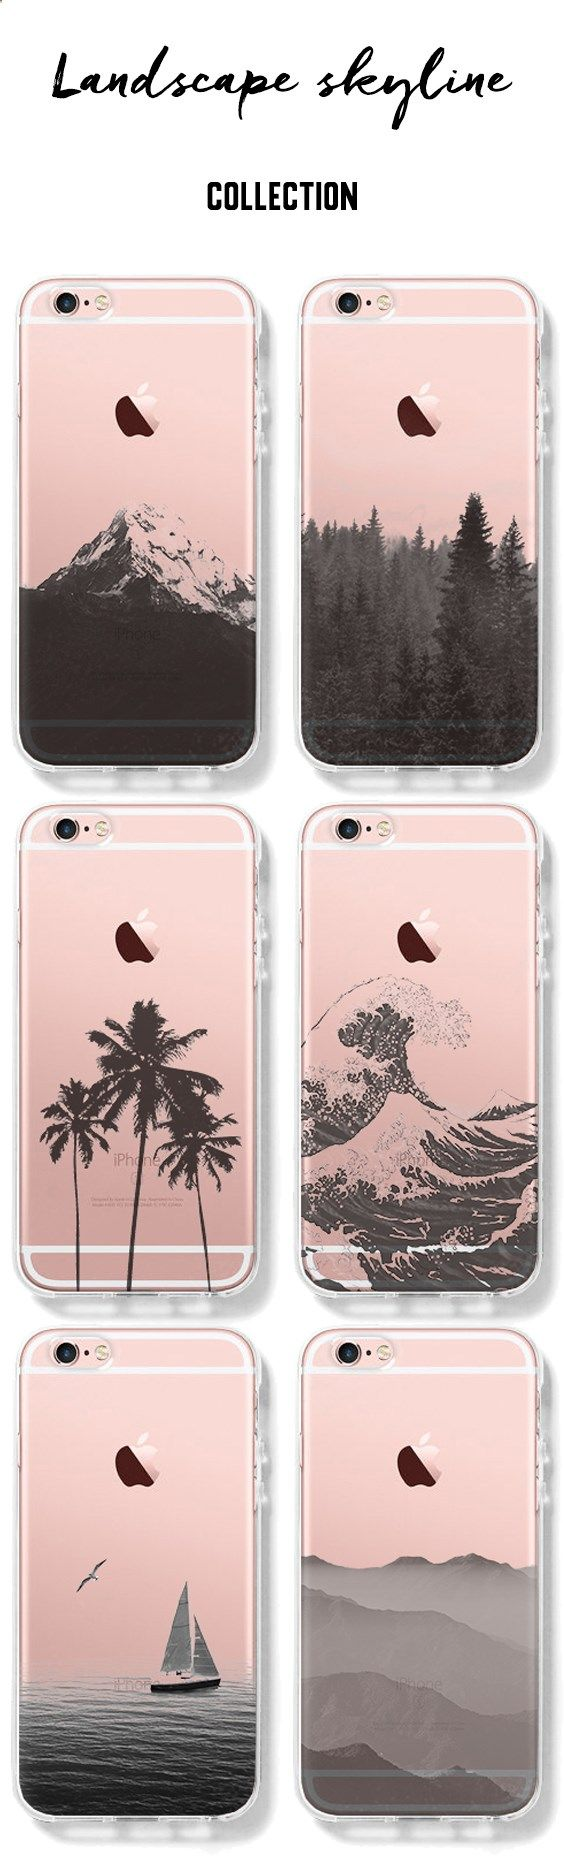 Phone Cases - Stylish Landscape iPhone Clear Case for 6S/6/Plus/SE/5S/5/5C Landscape-Collection